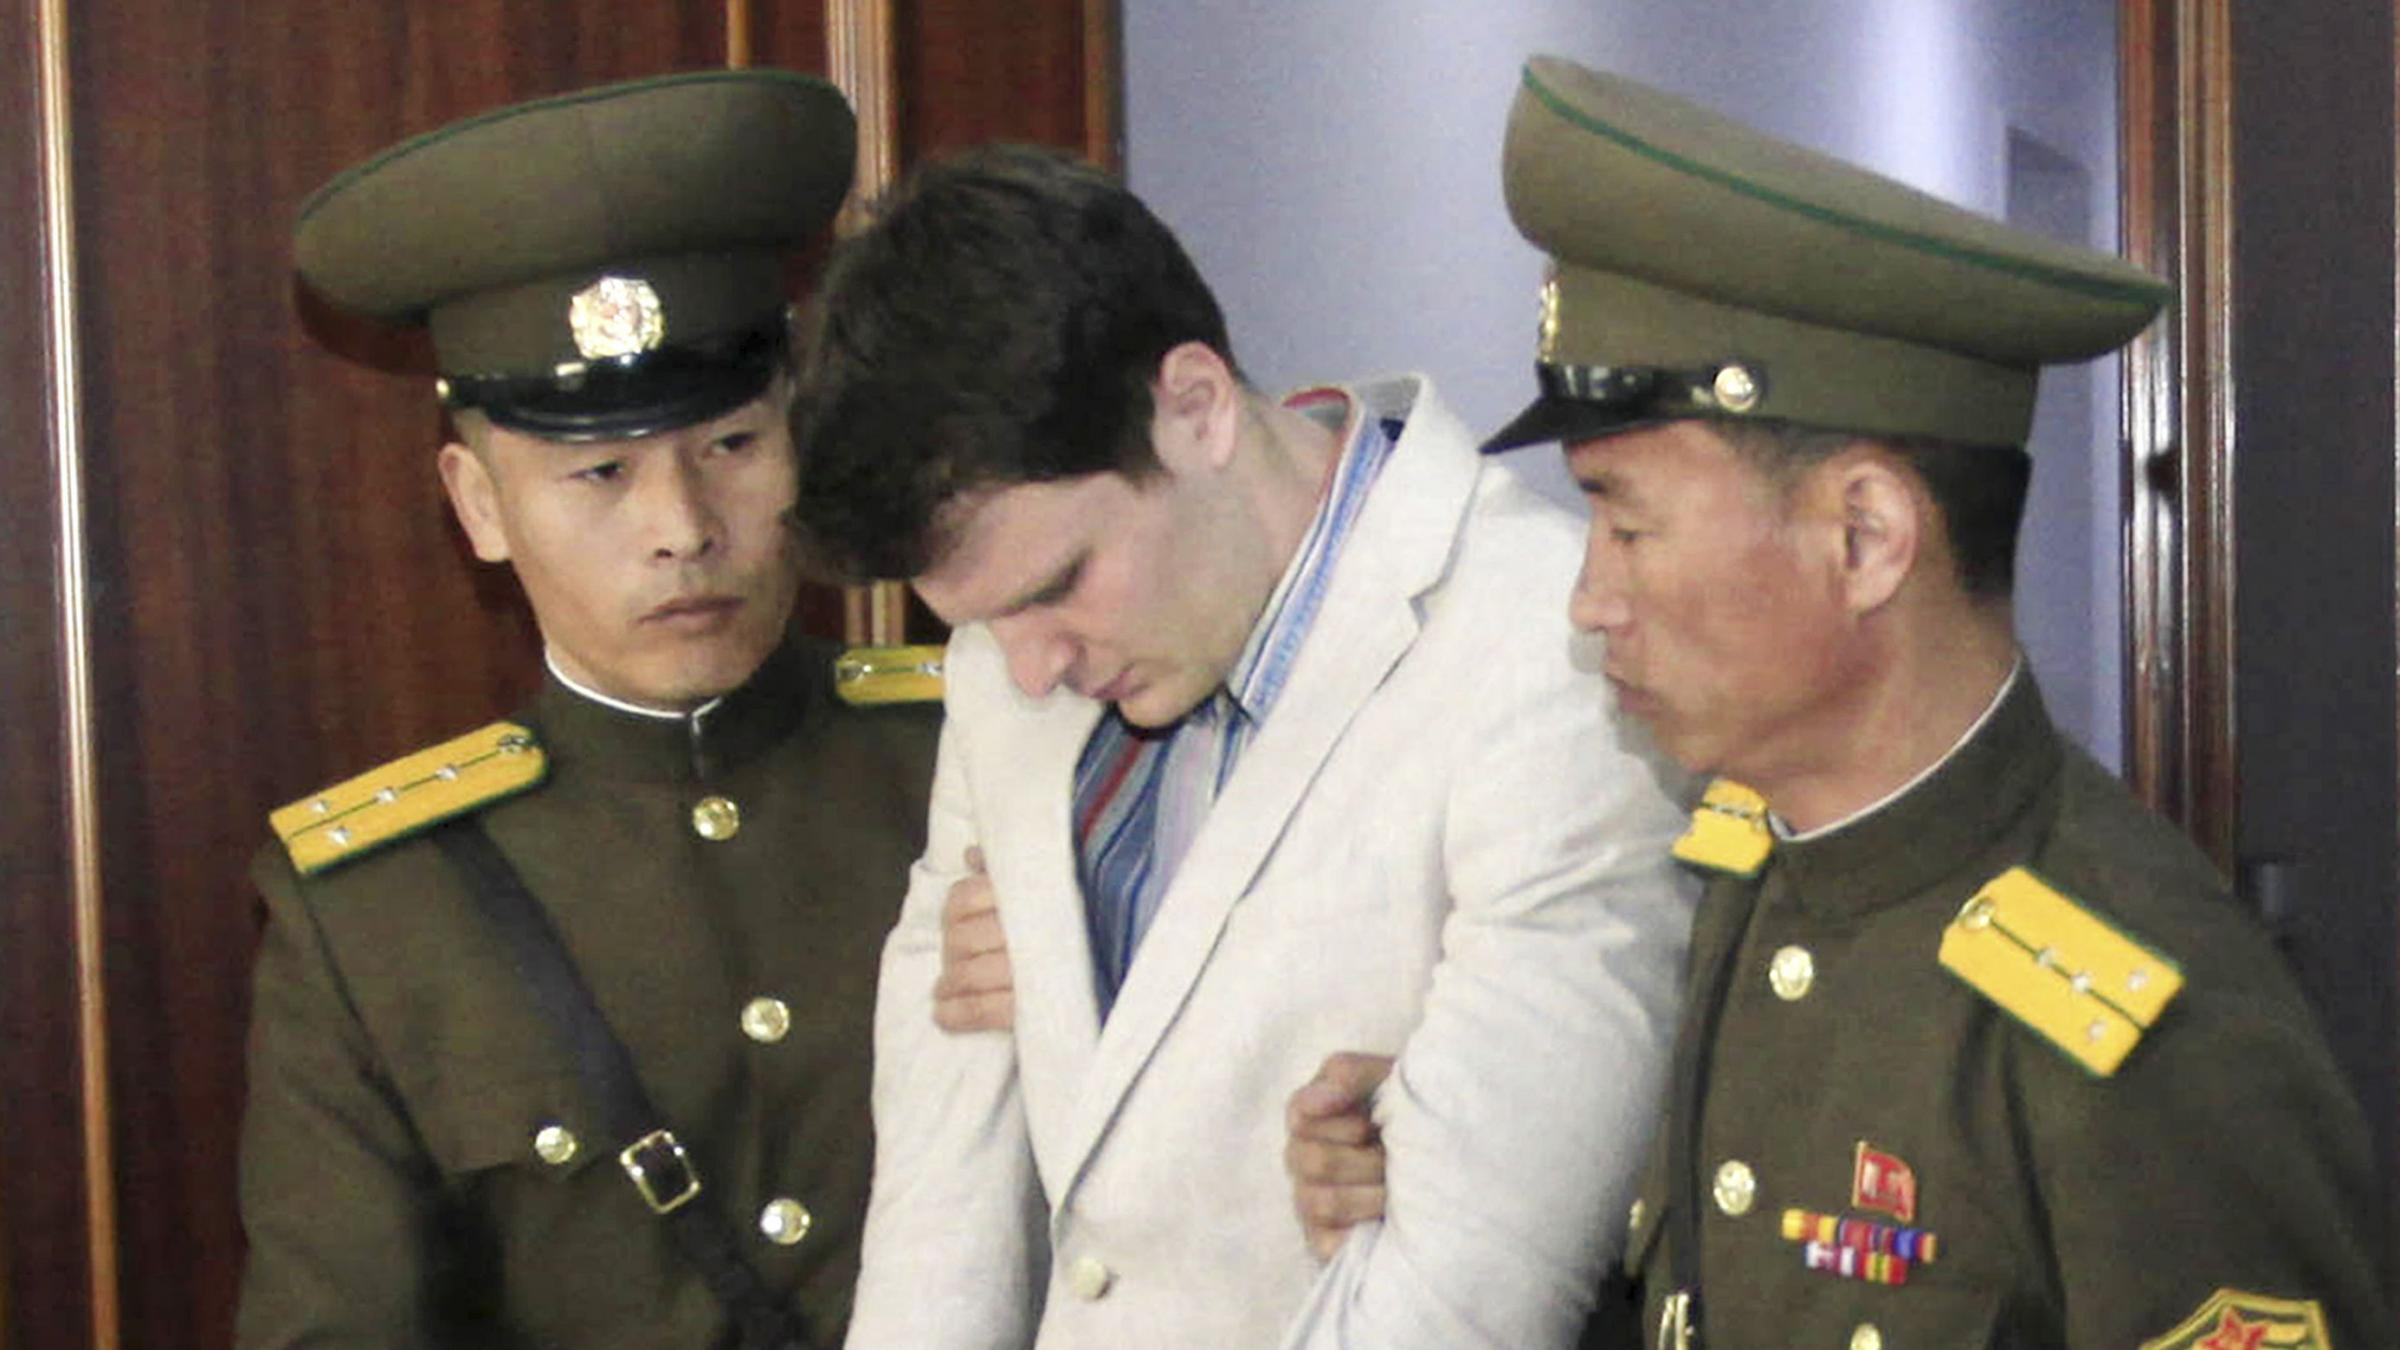 Doctors Say Otto Warmbier Suffered 'Extensive' Brain Damage